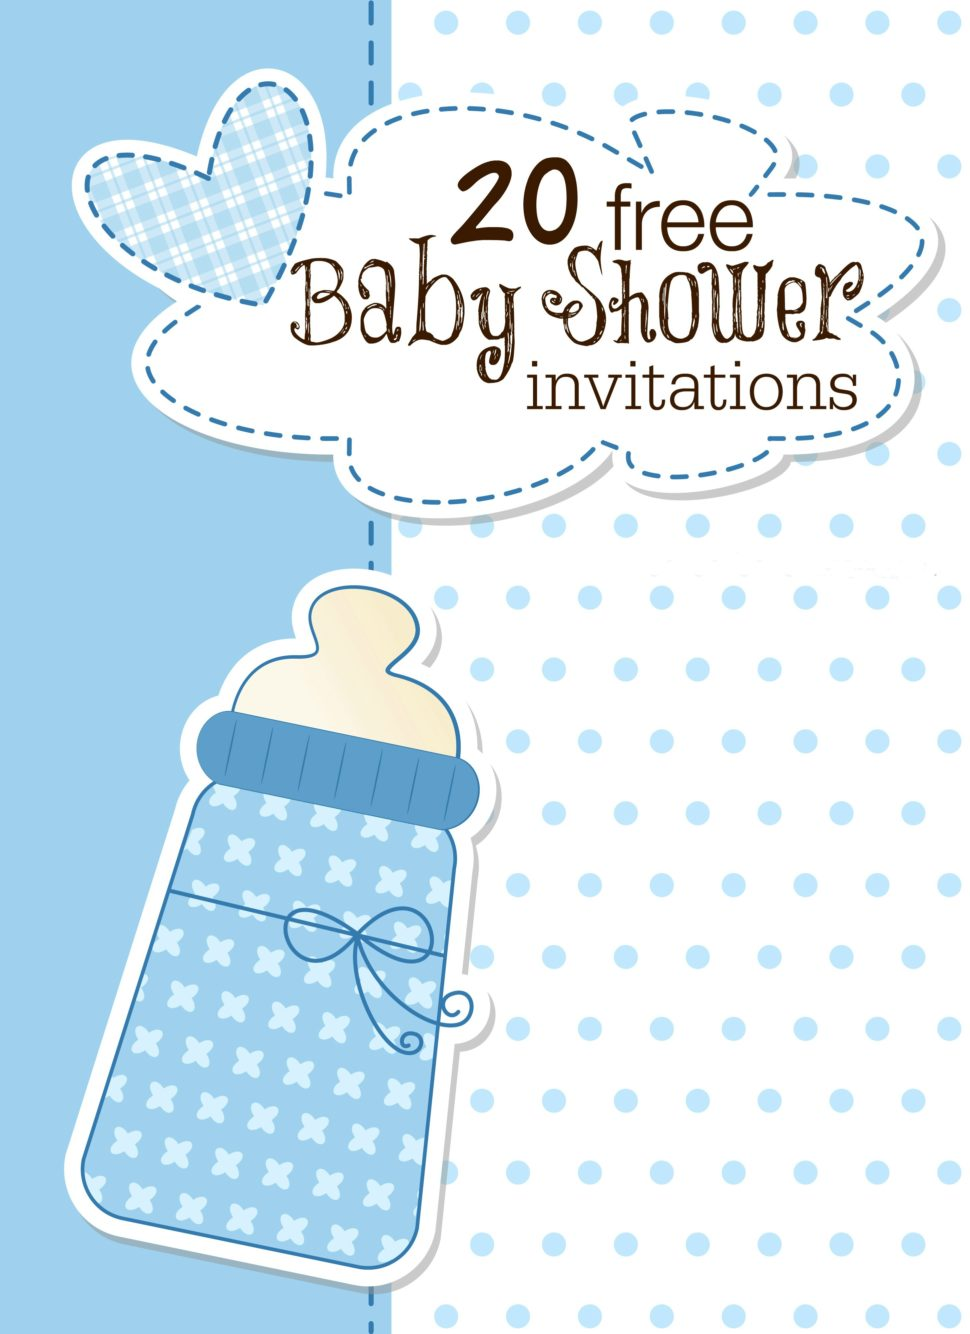 Medium Size of Baby Shower:homemade Baby Shower Decorations Baby Shower Ideas Baby Girl Baby Shower Supplies Baby Girl Party Plates Nautical Baby Shower Invitations For Boys Baby Girl Themes For Bedroom Baby Shower Ideas Baby Shower Decorations Themes For Baby Girl Nursery